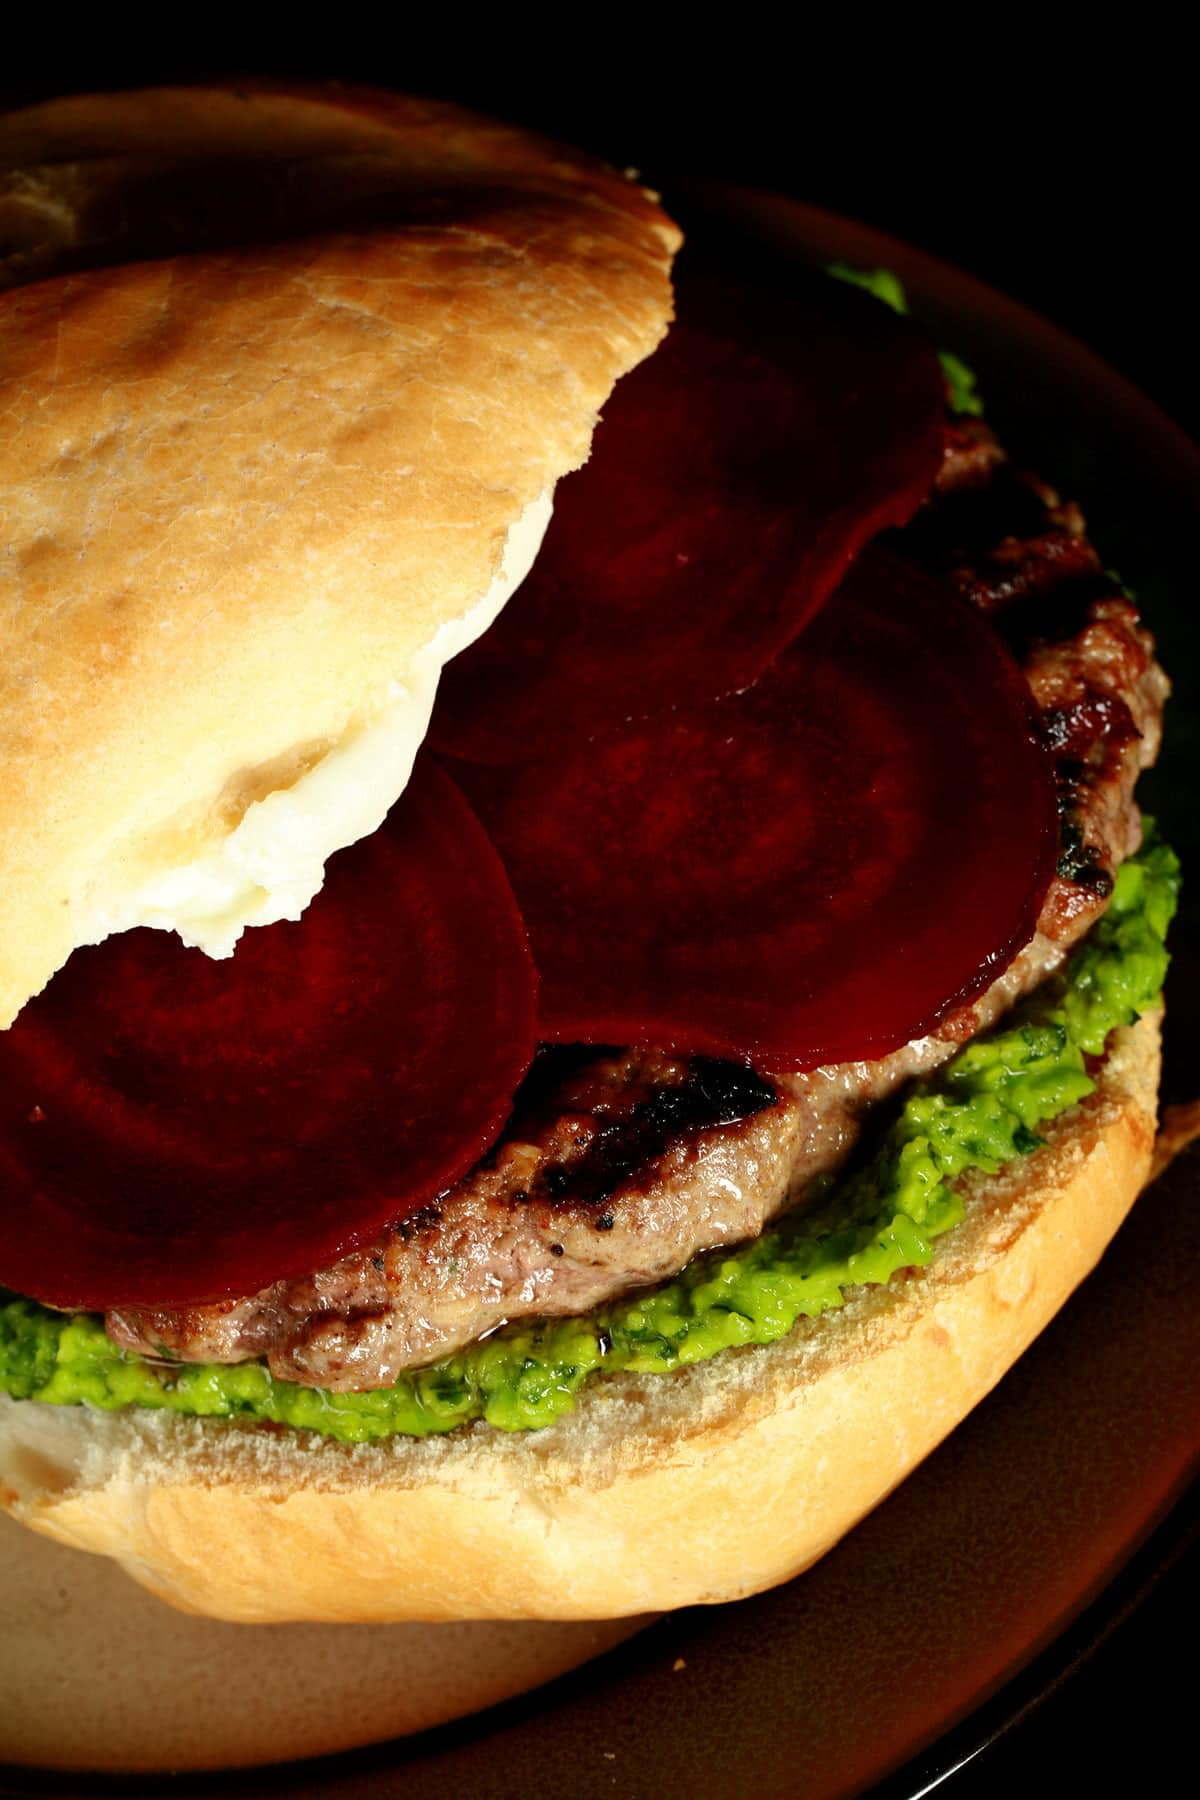 Close up view of a burger with a green spread, a goat cheese spread, and beet slices on it.